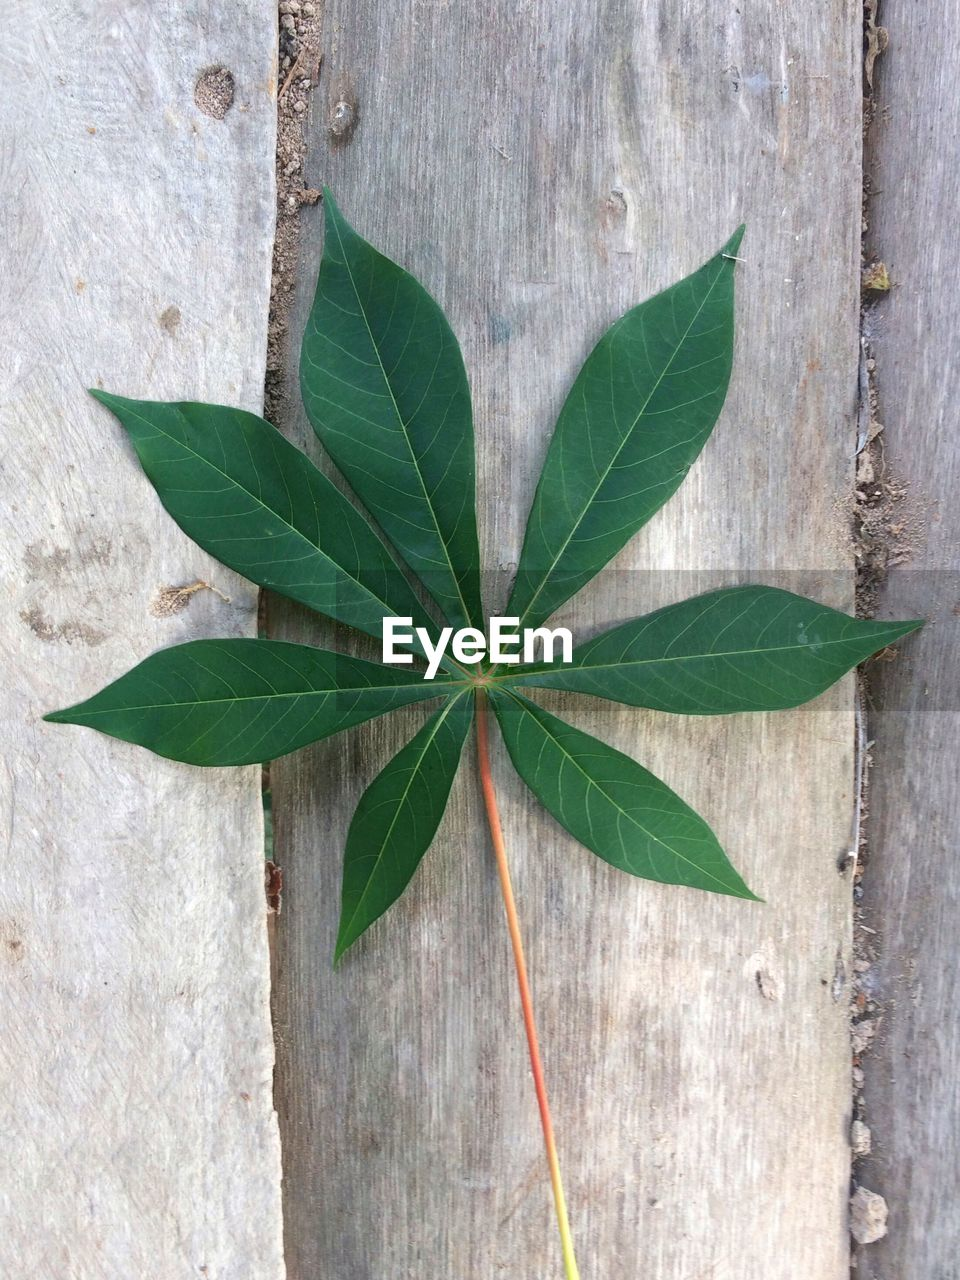 leaf, plant part, green color, close-up, directly above, nature, plant, no people, wood - material, day, outdoors, high angle view, growth, beauty in nature, vulnerability, leaf vein, herb, pattern, fragility, wall - building feature, leaves, concrete